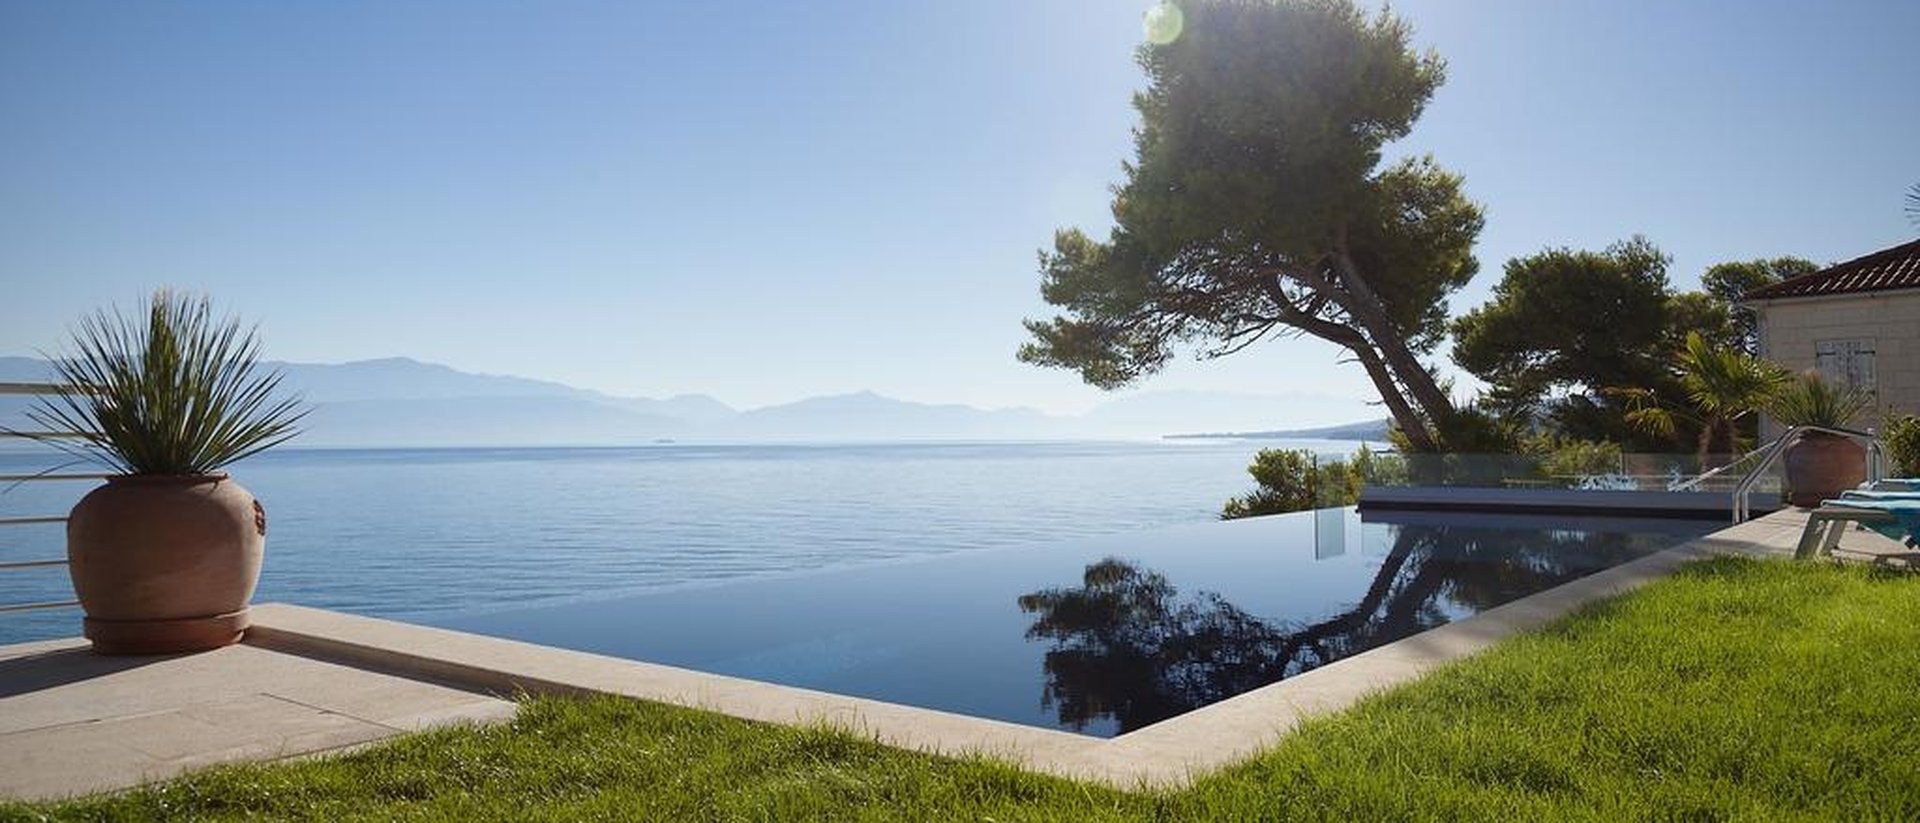 Beautiful seafront villa with private beach in Sutivan on the paradise island of Brac